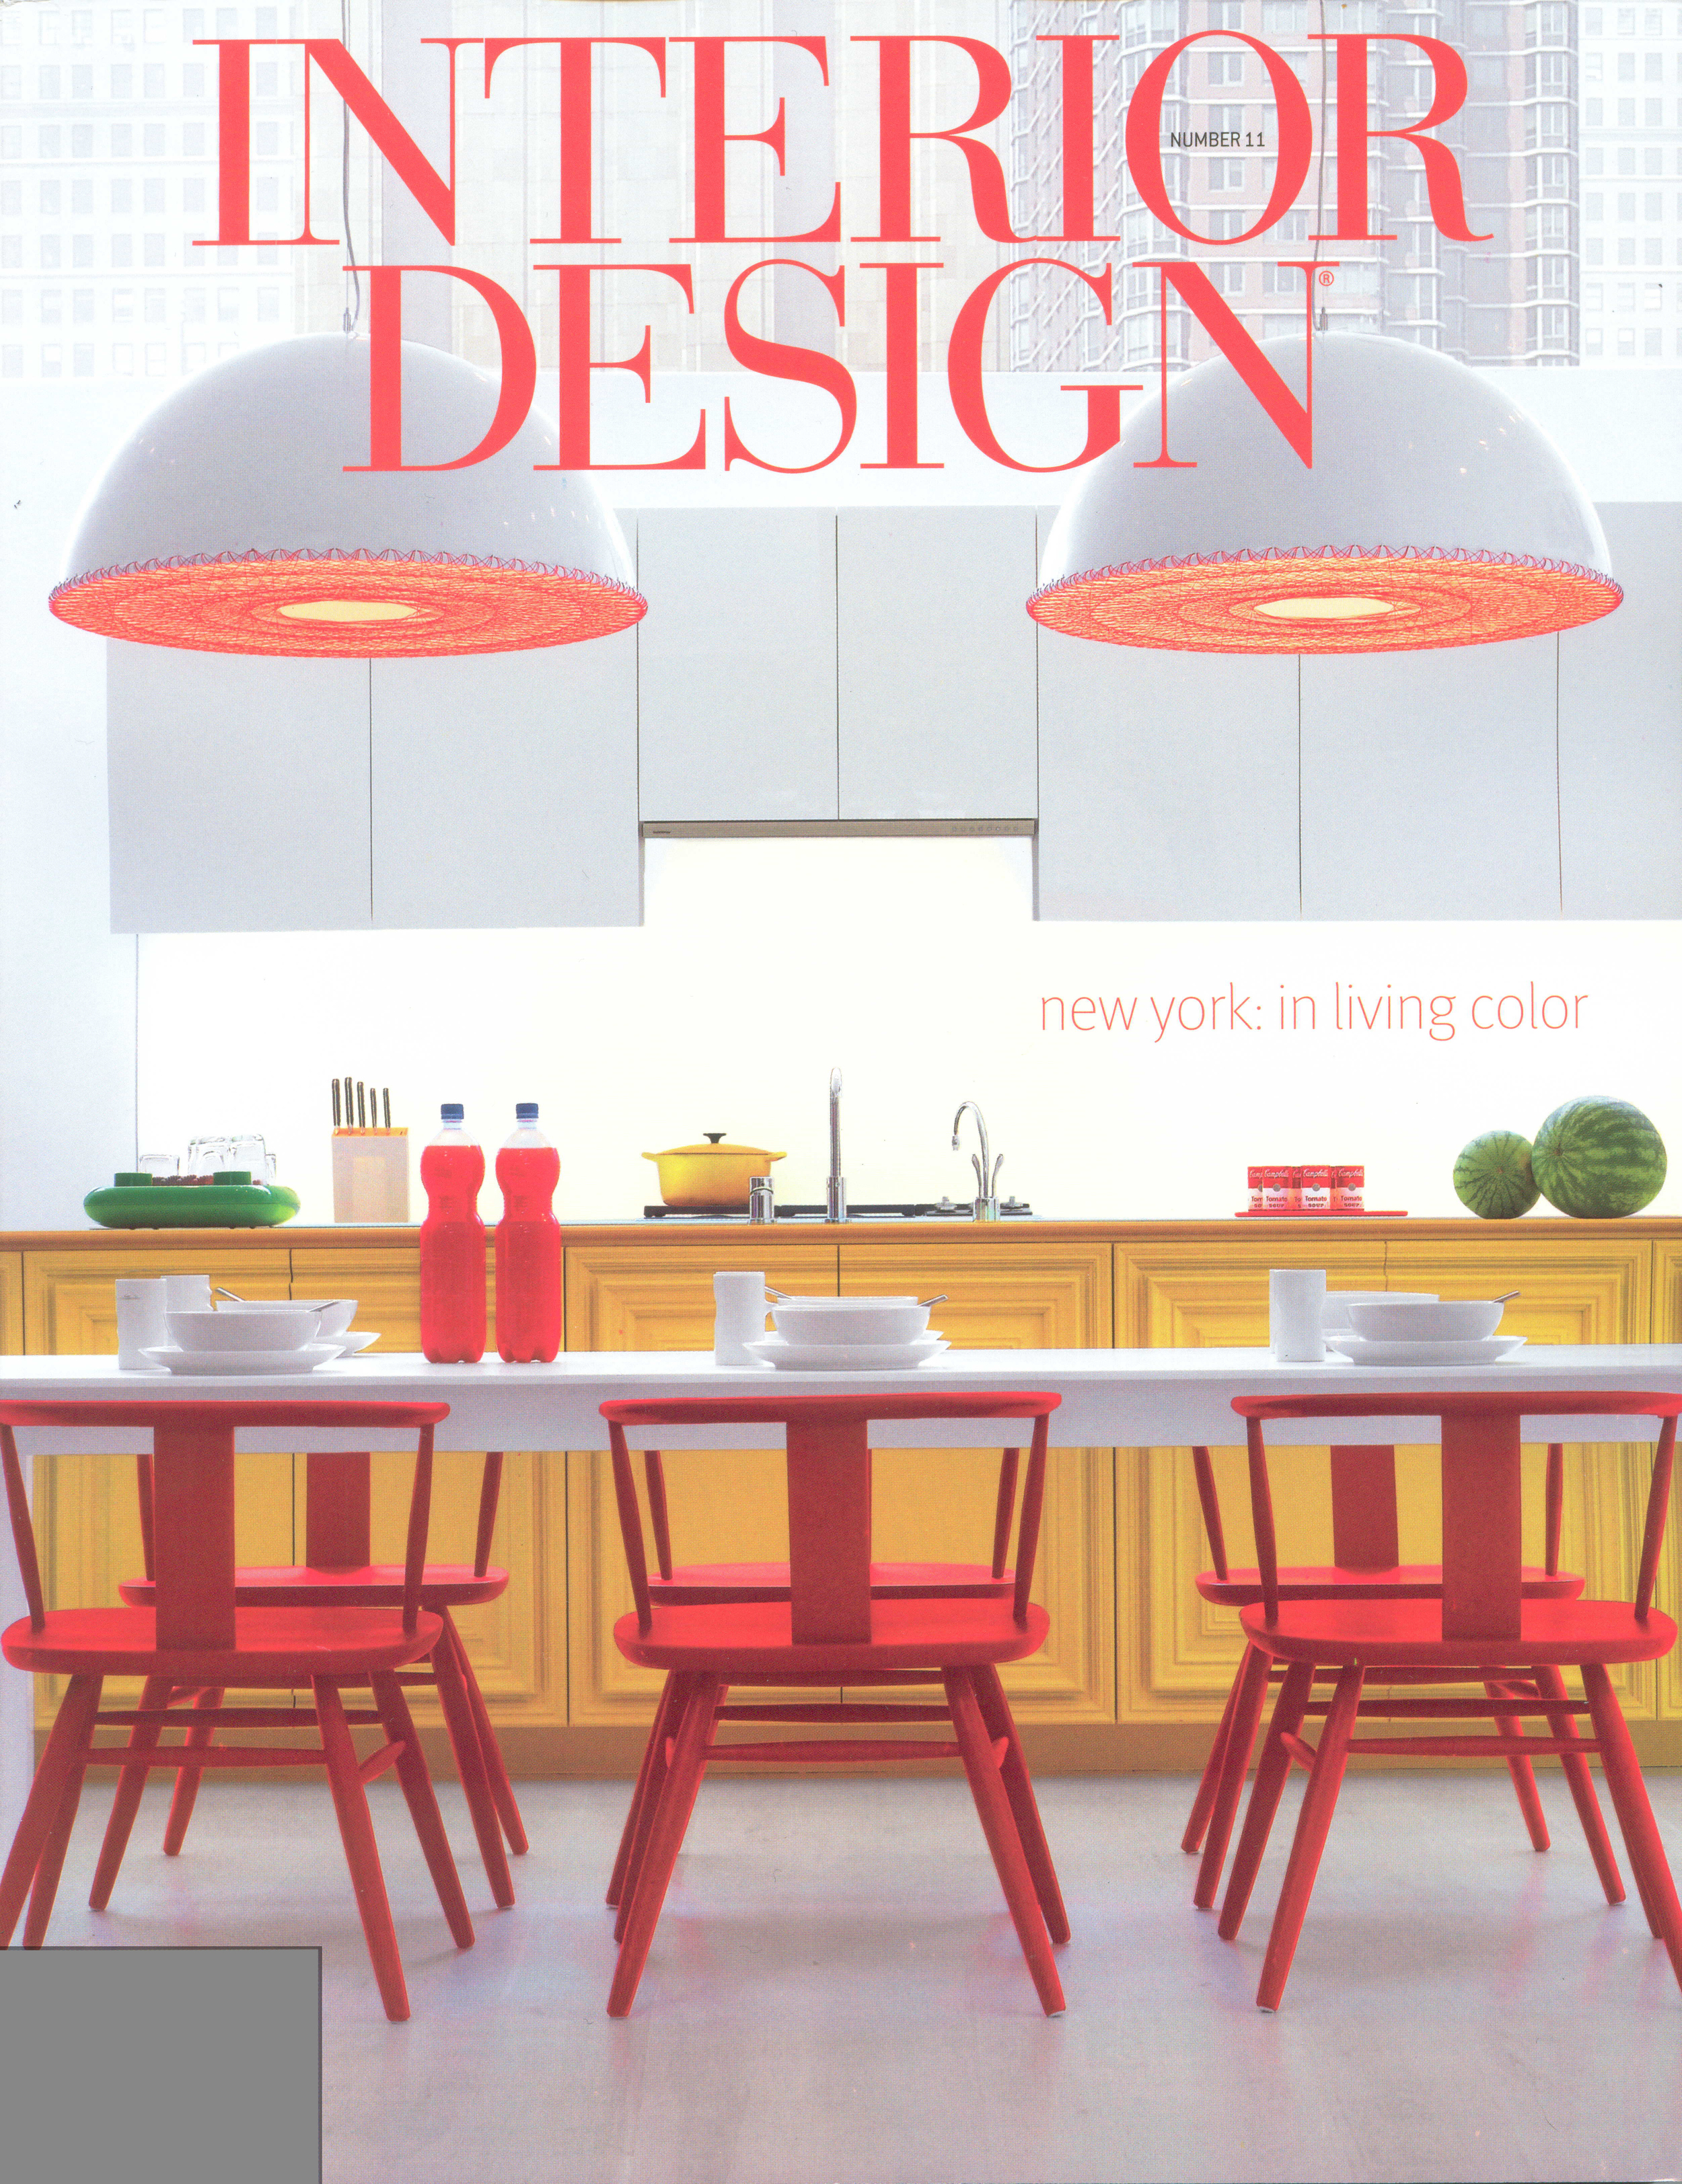 September-2010-Interior-Design-cover-600dpi.jpg